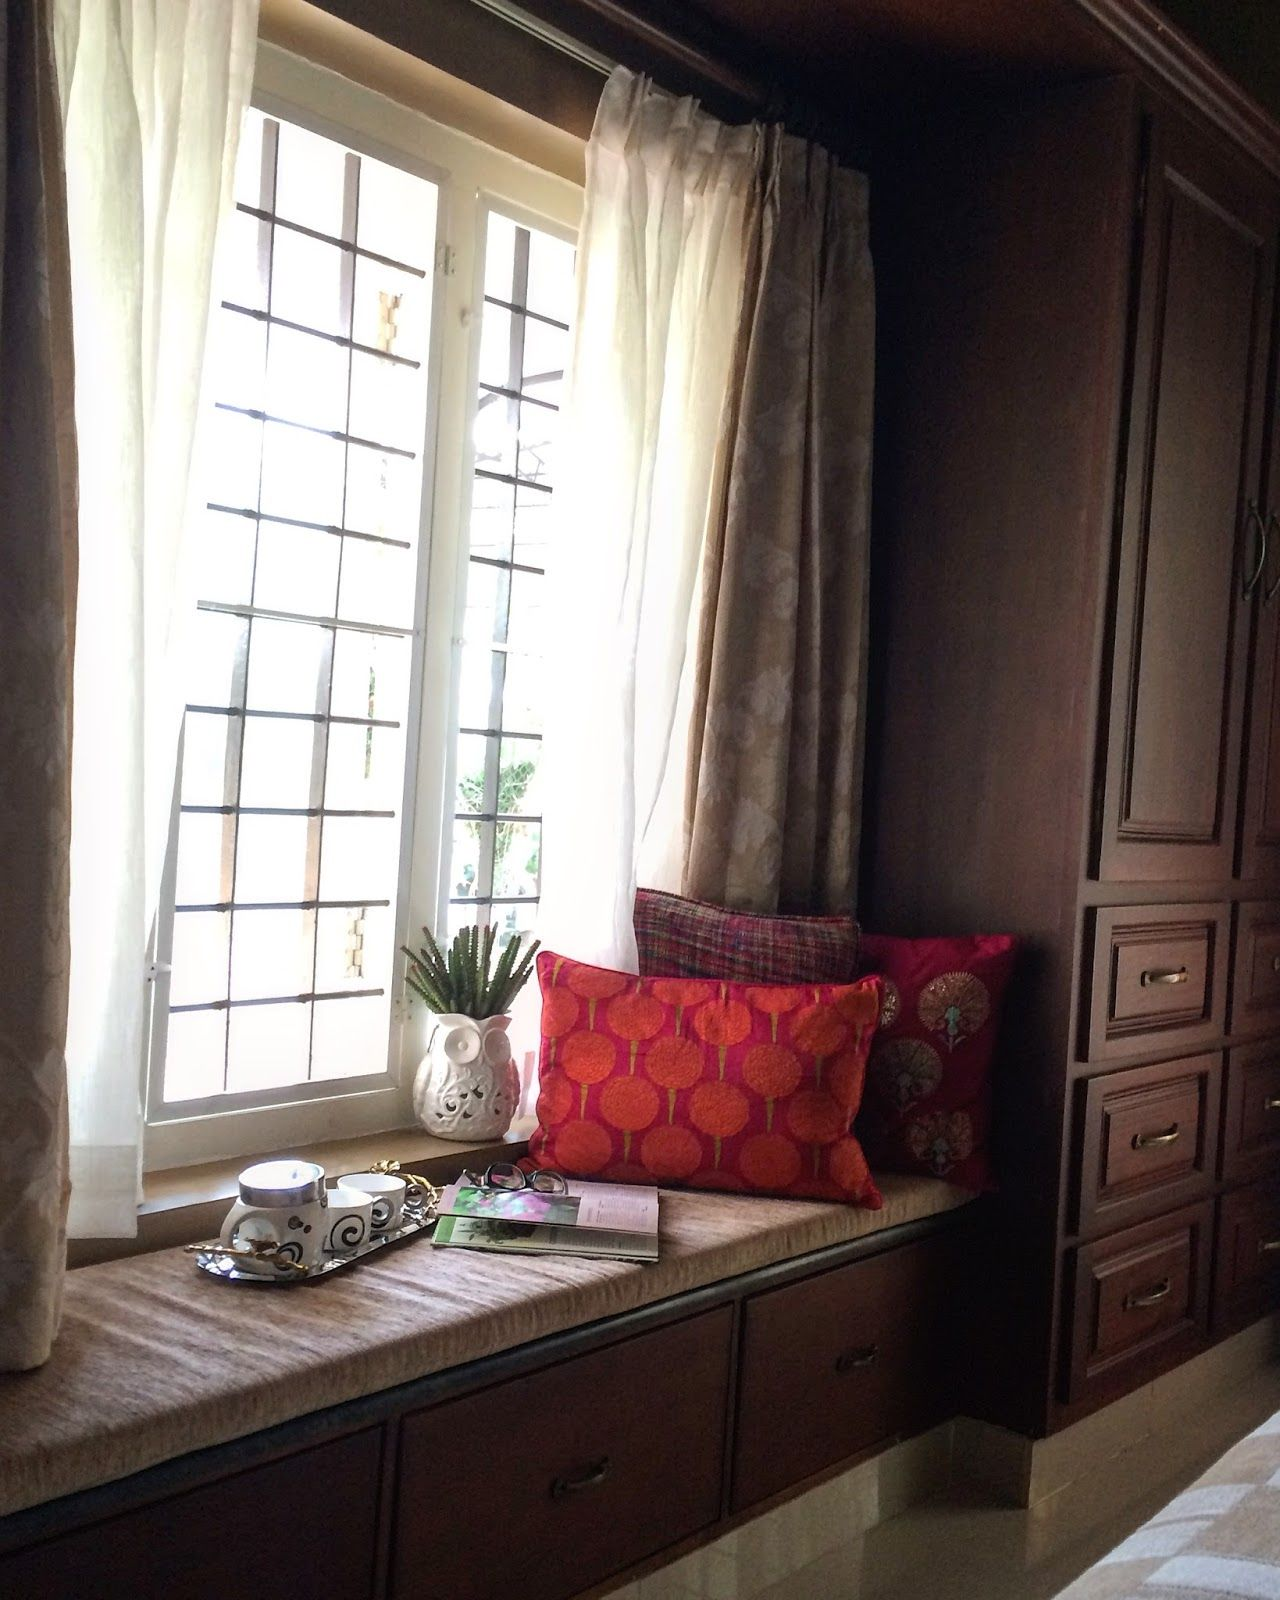 Convert The Dead Space By Your Window Into A Welcoming